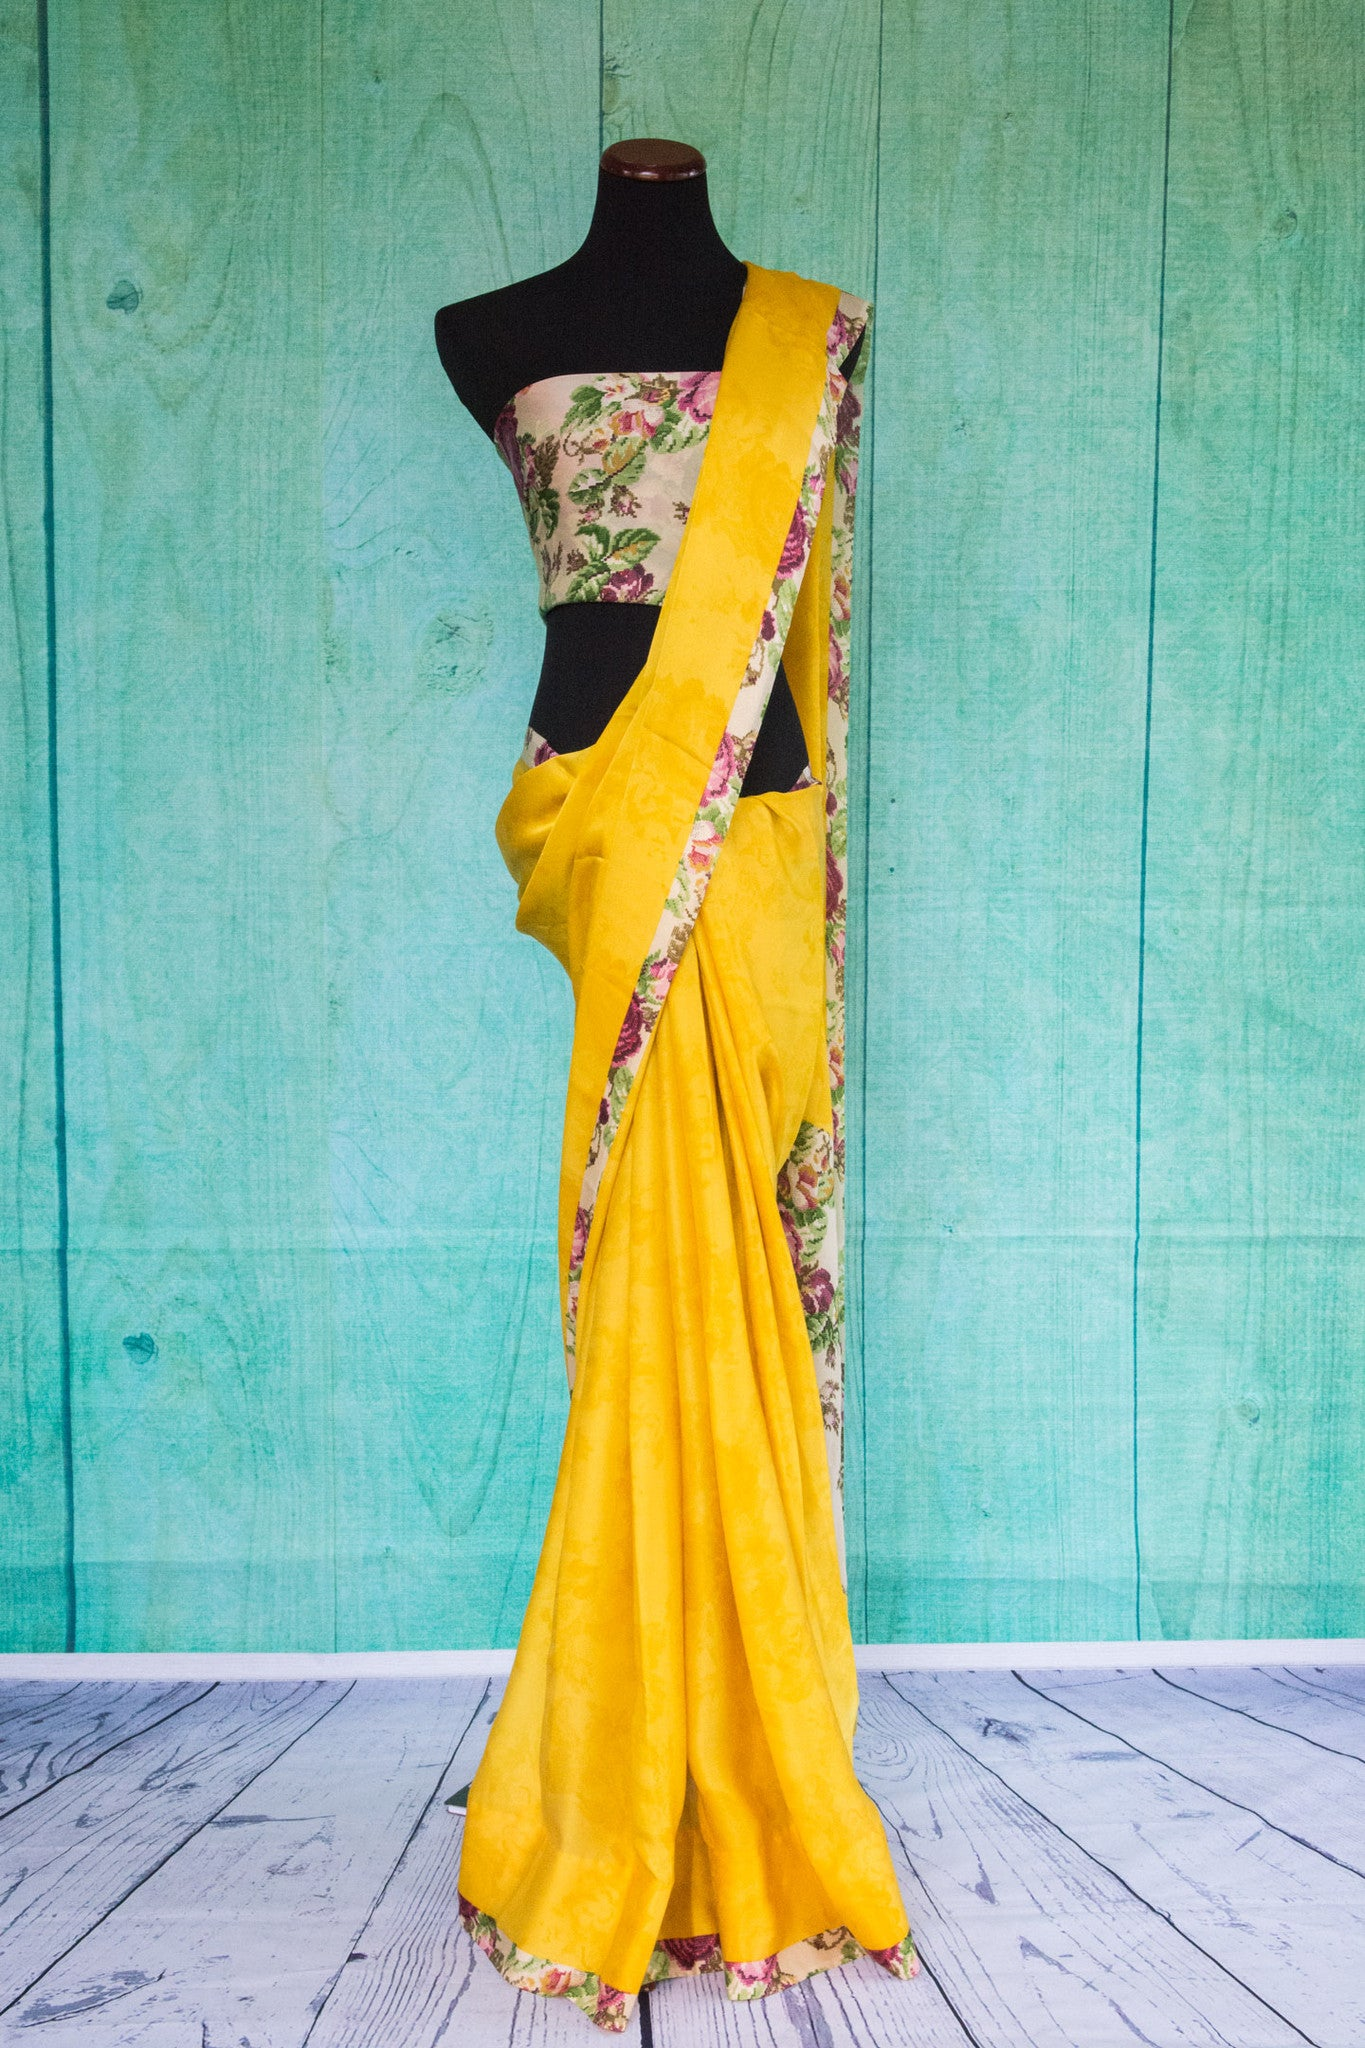 90c092 Yellow plain saree with floral blouse and border trim ideal for festive occasions and pujas. Buy this satin crepe saree online in USA at our ethnic clothing store Pure Elegance.